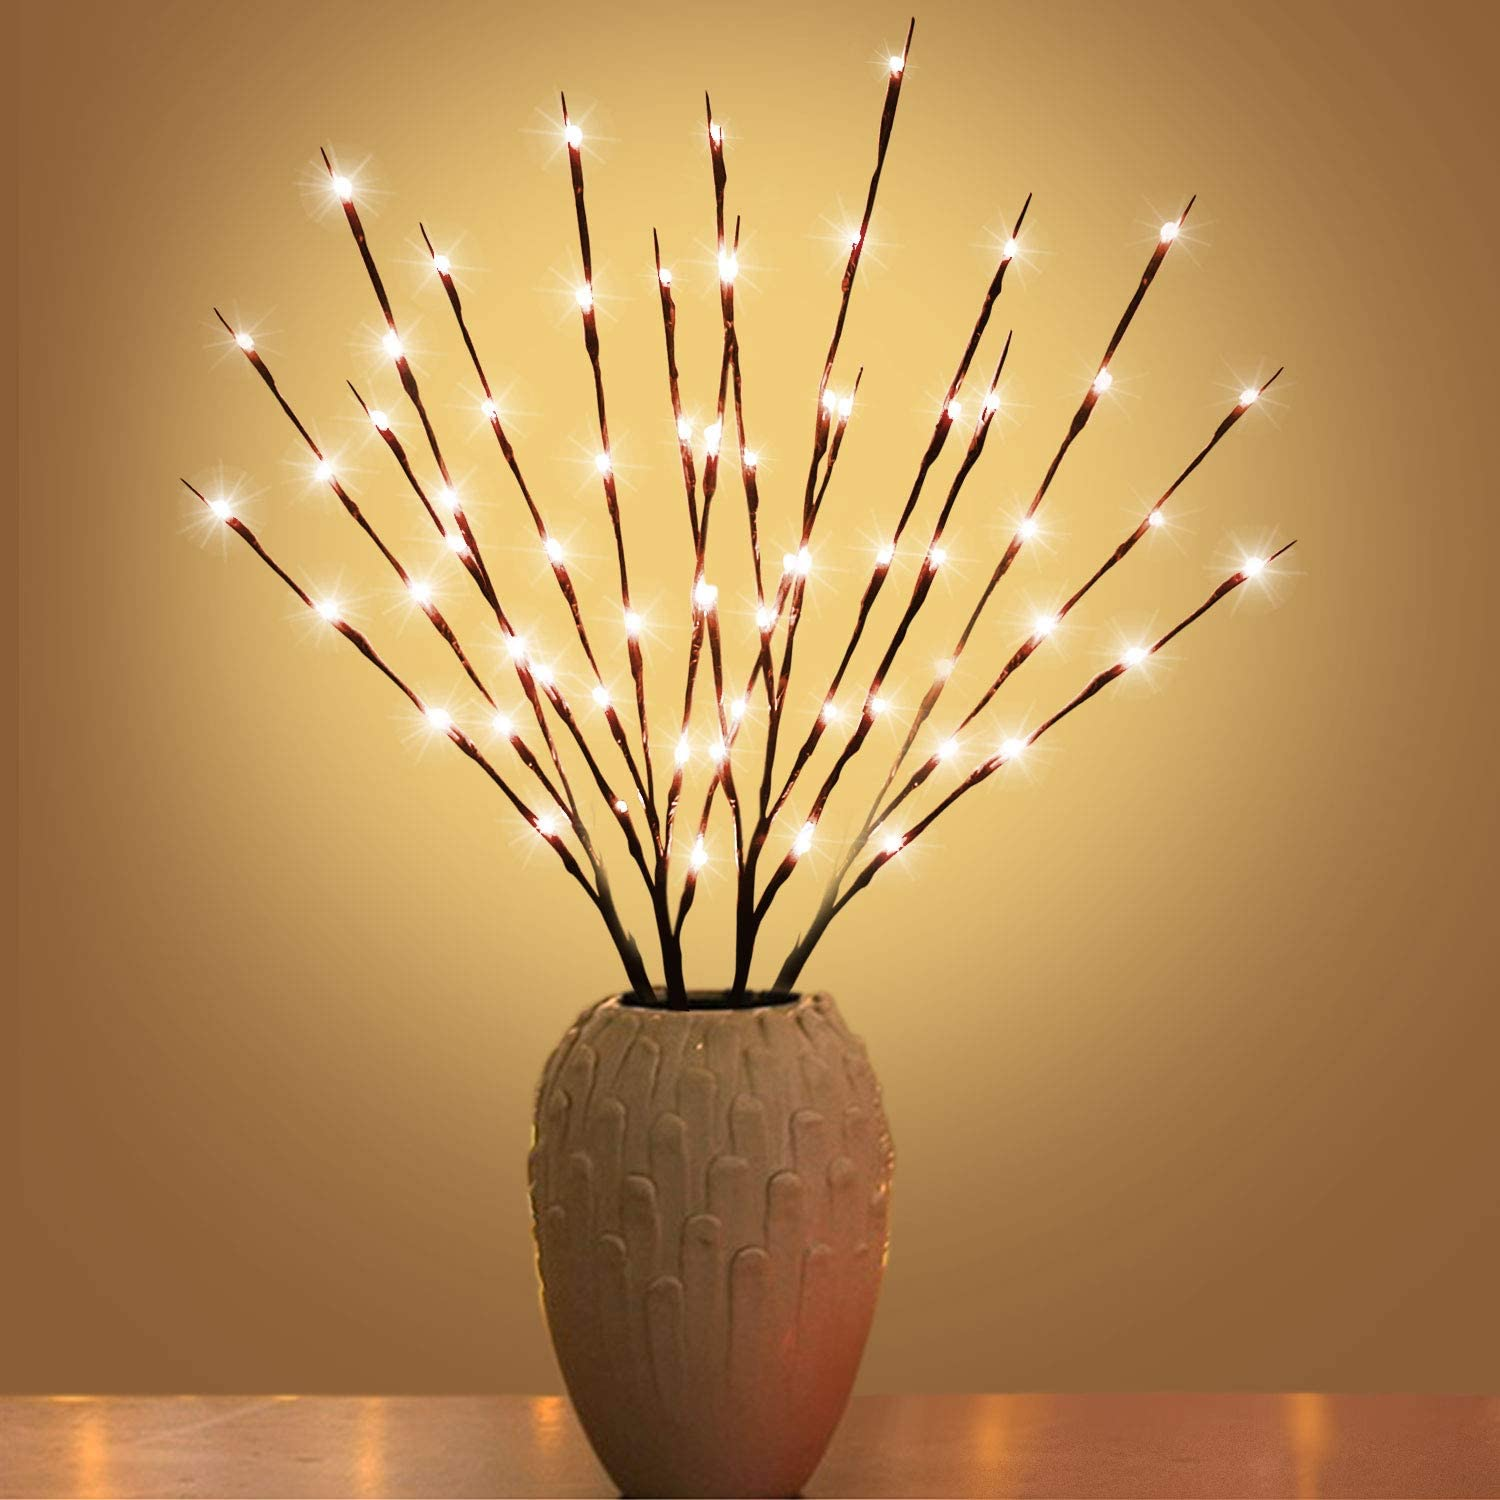 XIANMU Led Branch Light Battery Operated Lighted Branches Vase Filler Willow Twig Lighted Branch 30 Inch 20 LED for Christmas Home Party Decoration Indoor Outdoor Use Pack of 2 Warm White